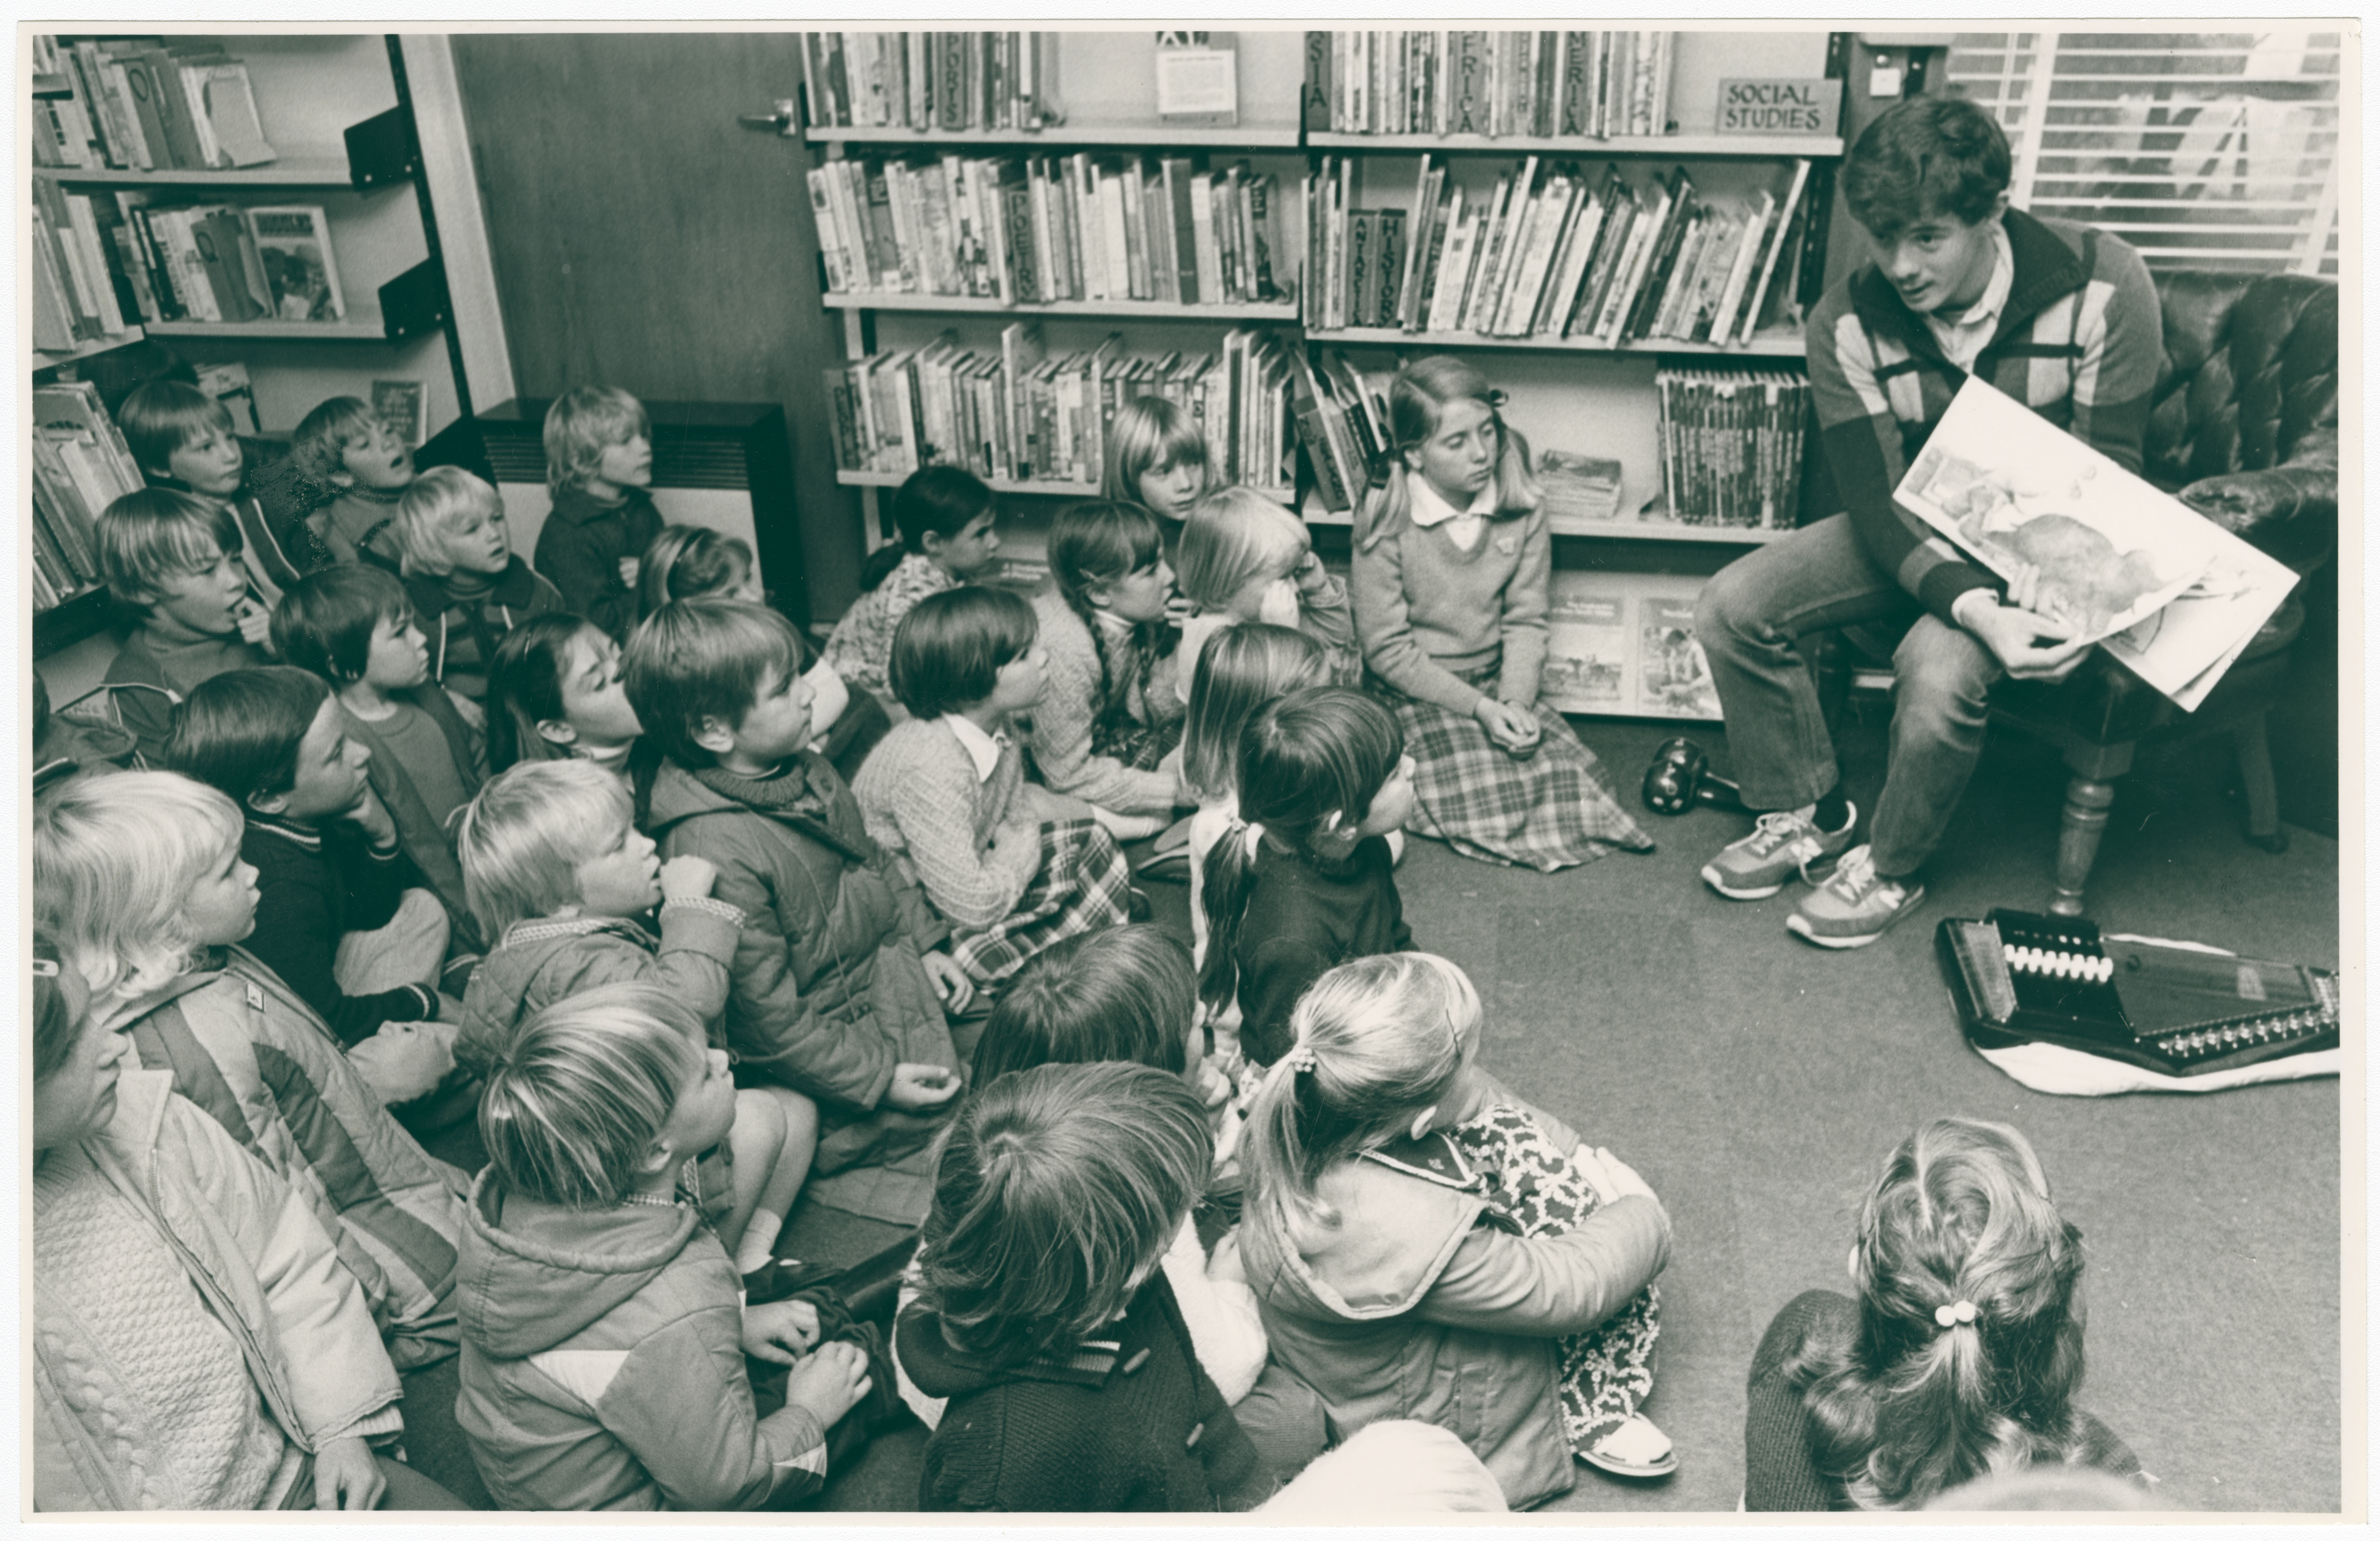 Story time at Halswell Library